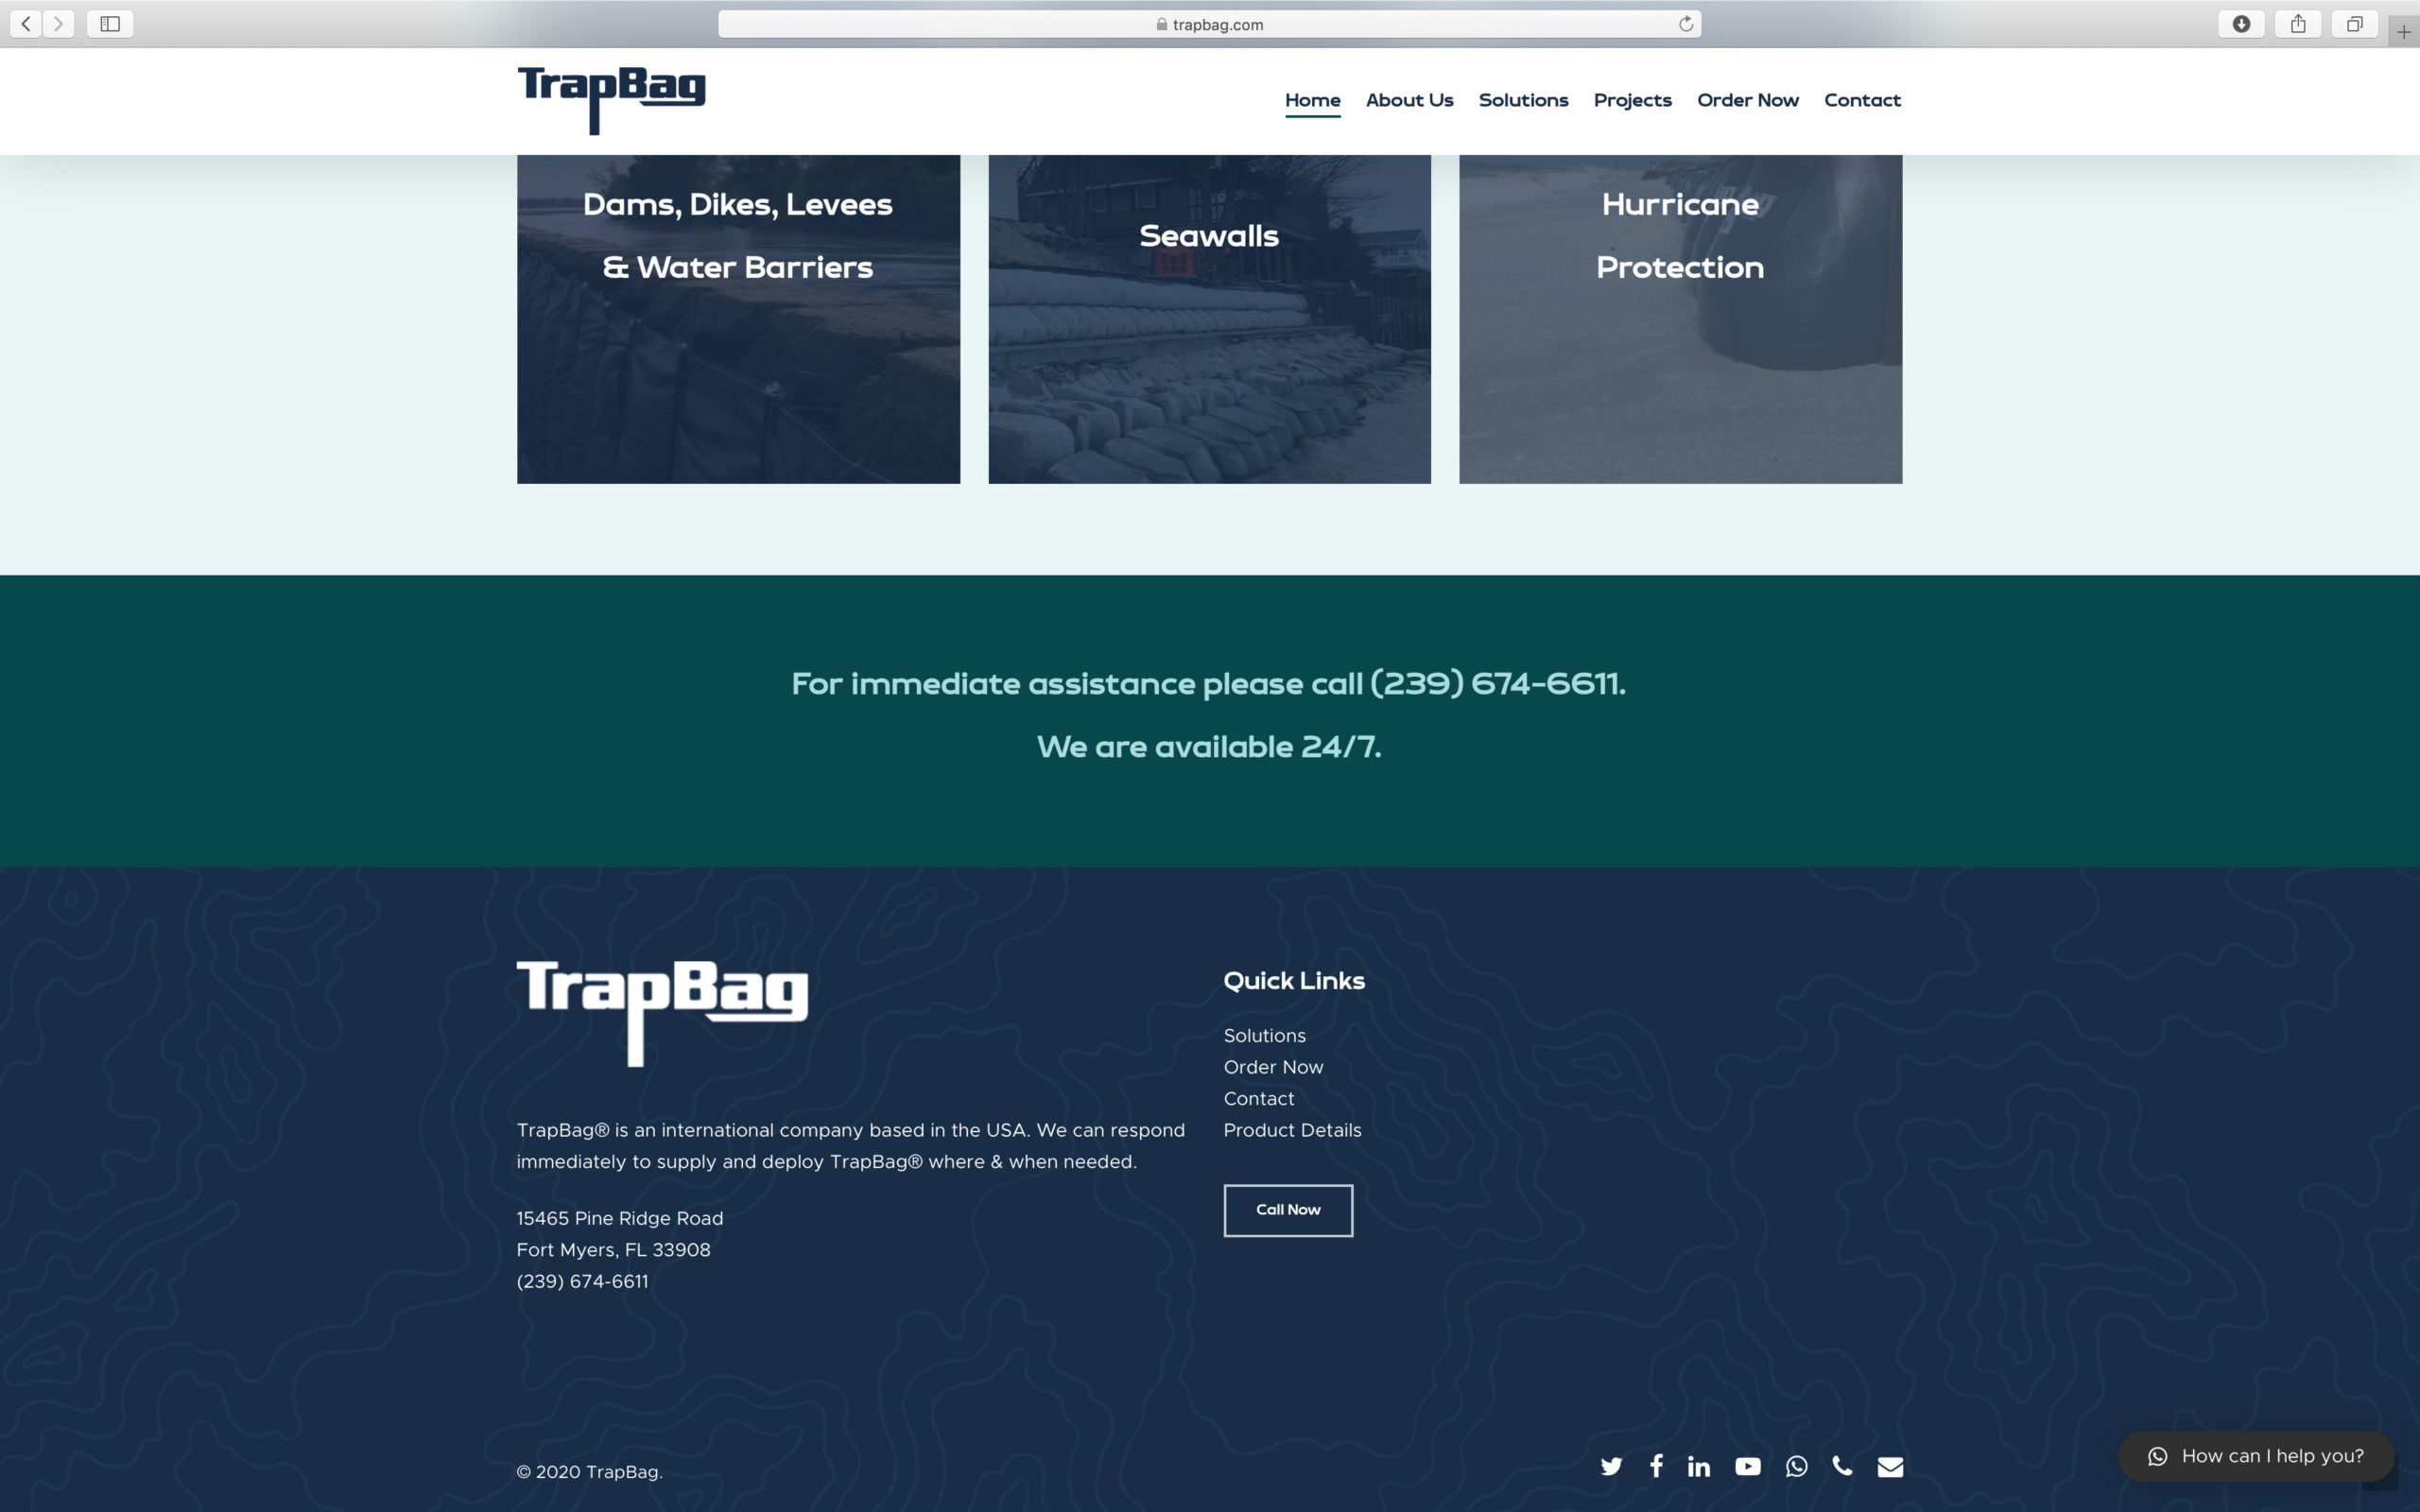 an image of a clean website design for an ecommerce website